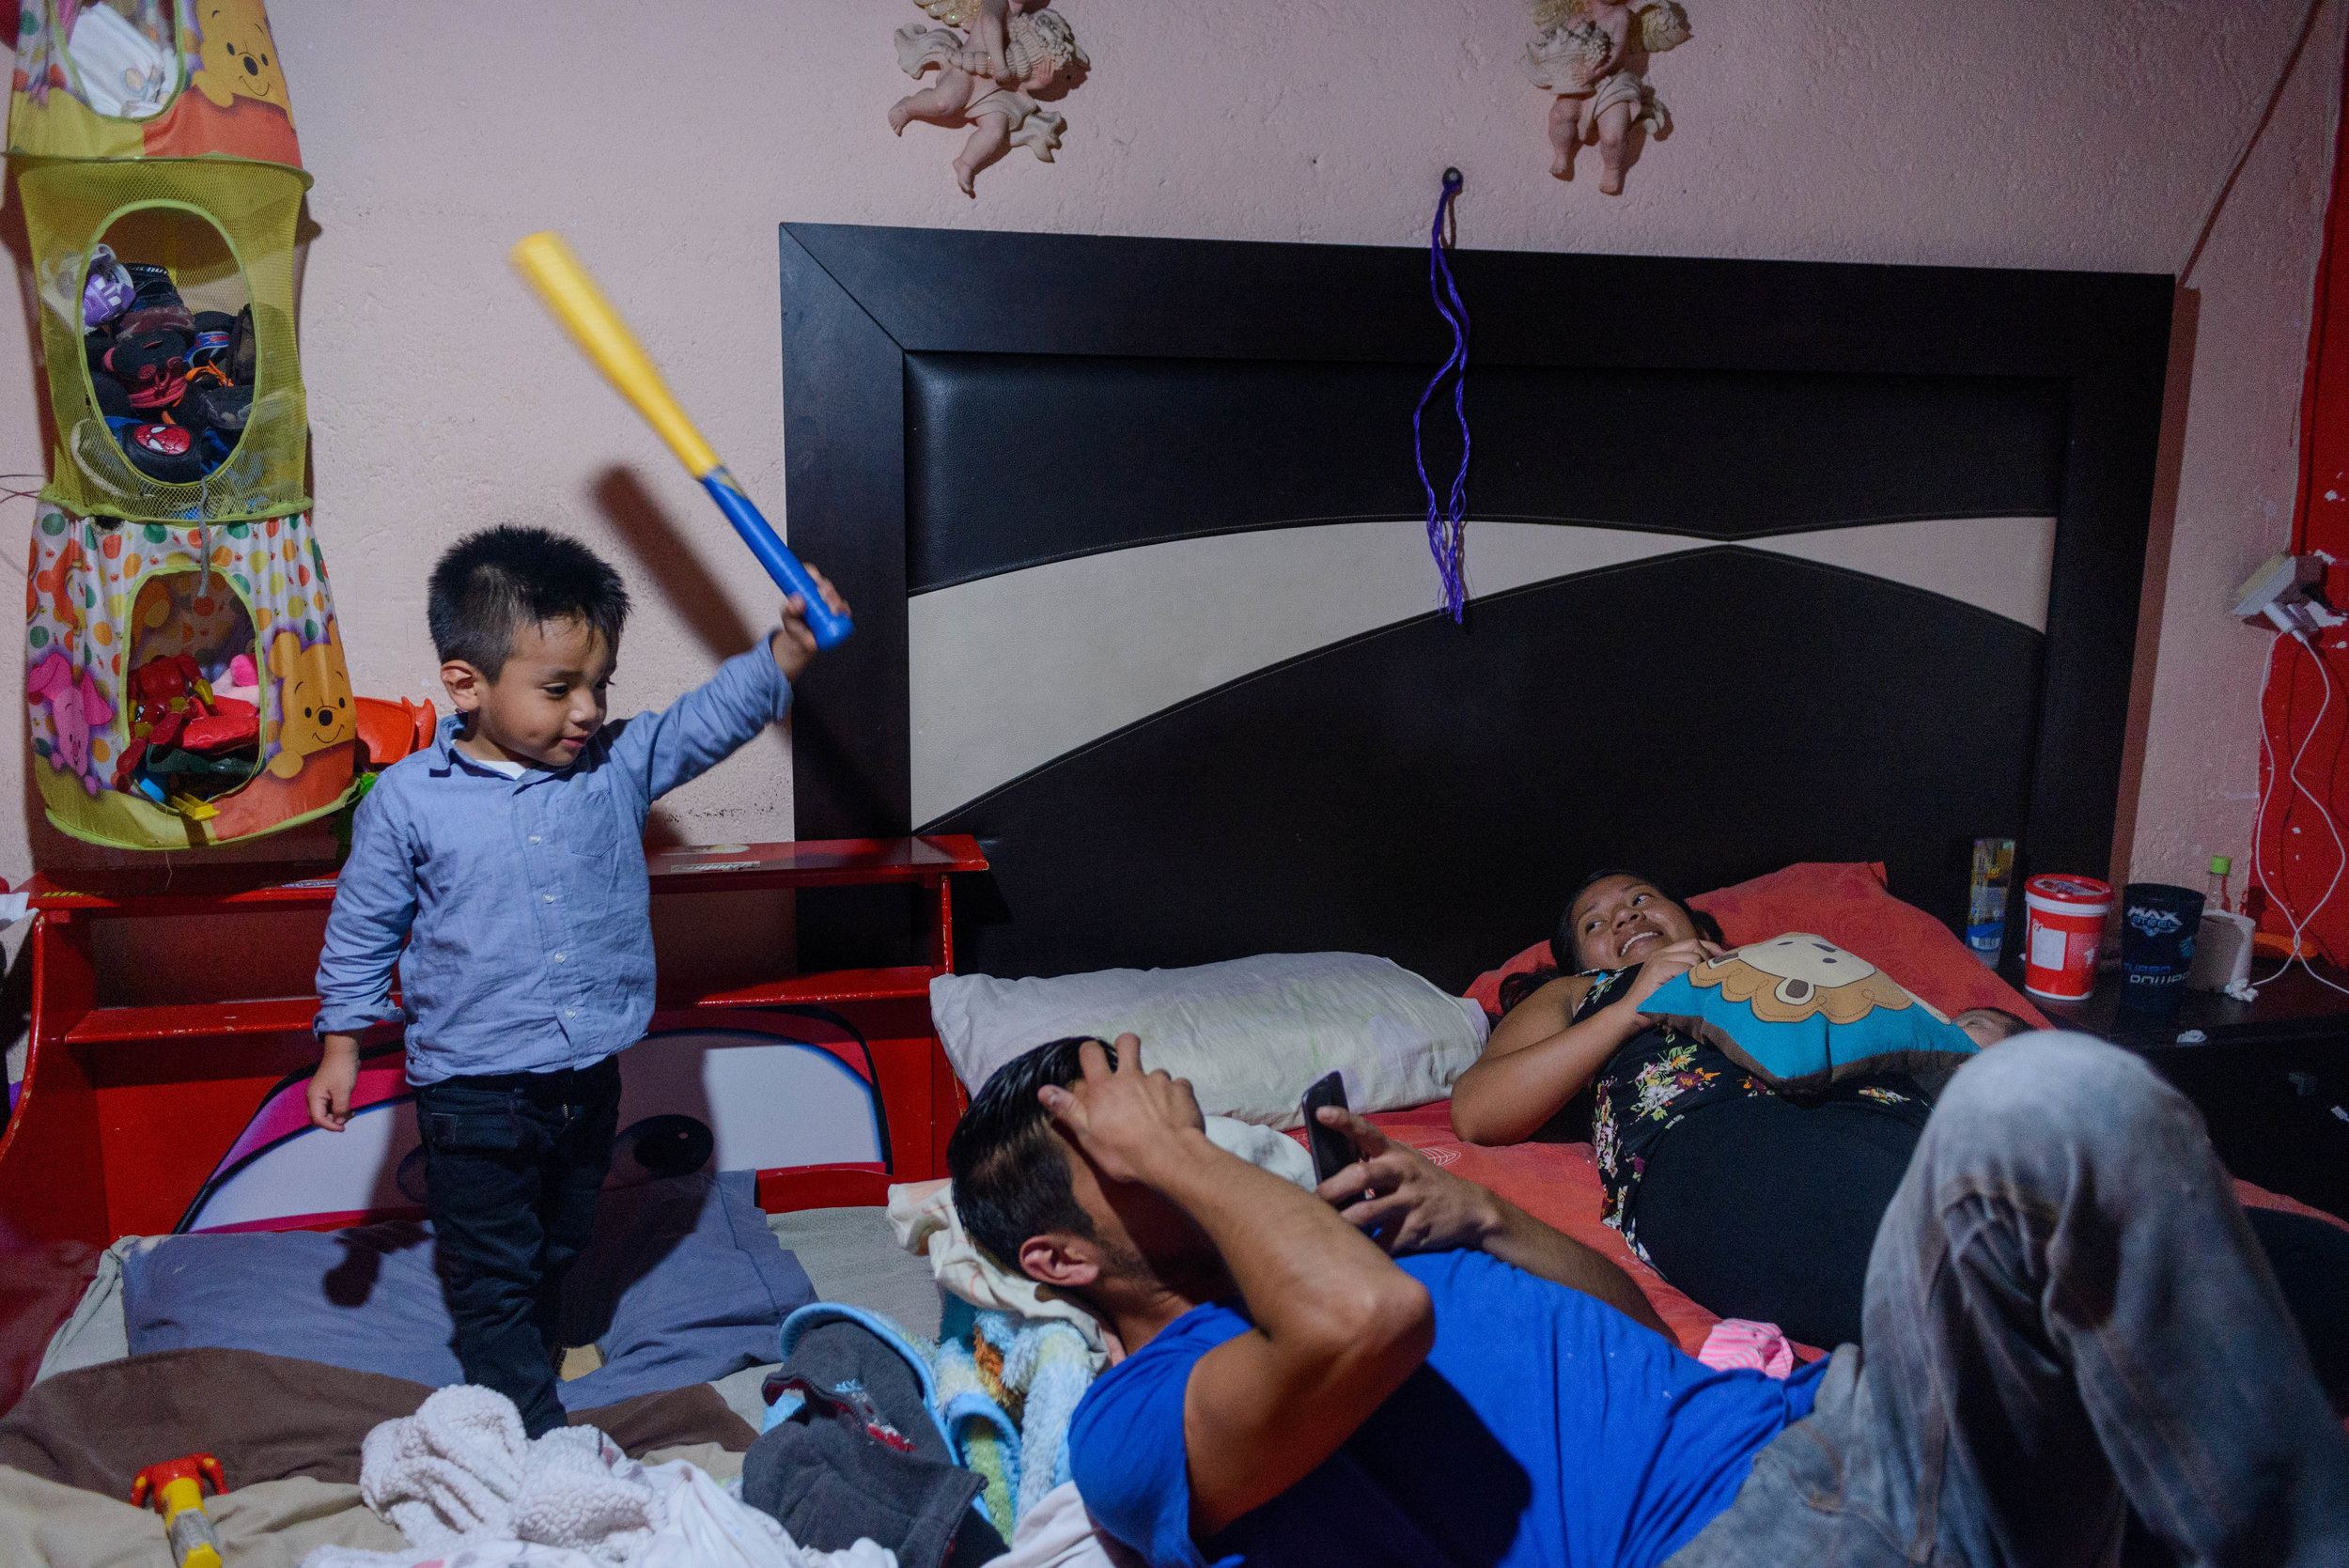 3 year old Logan threatens to hit his father with a play bat while his mother Marlen enjoys a moment of rest with her 2-month old daugher.